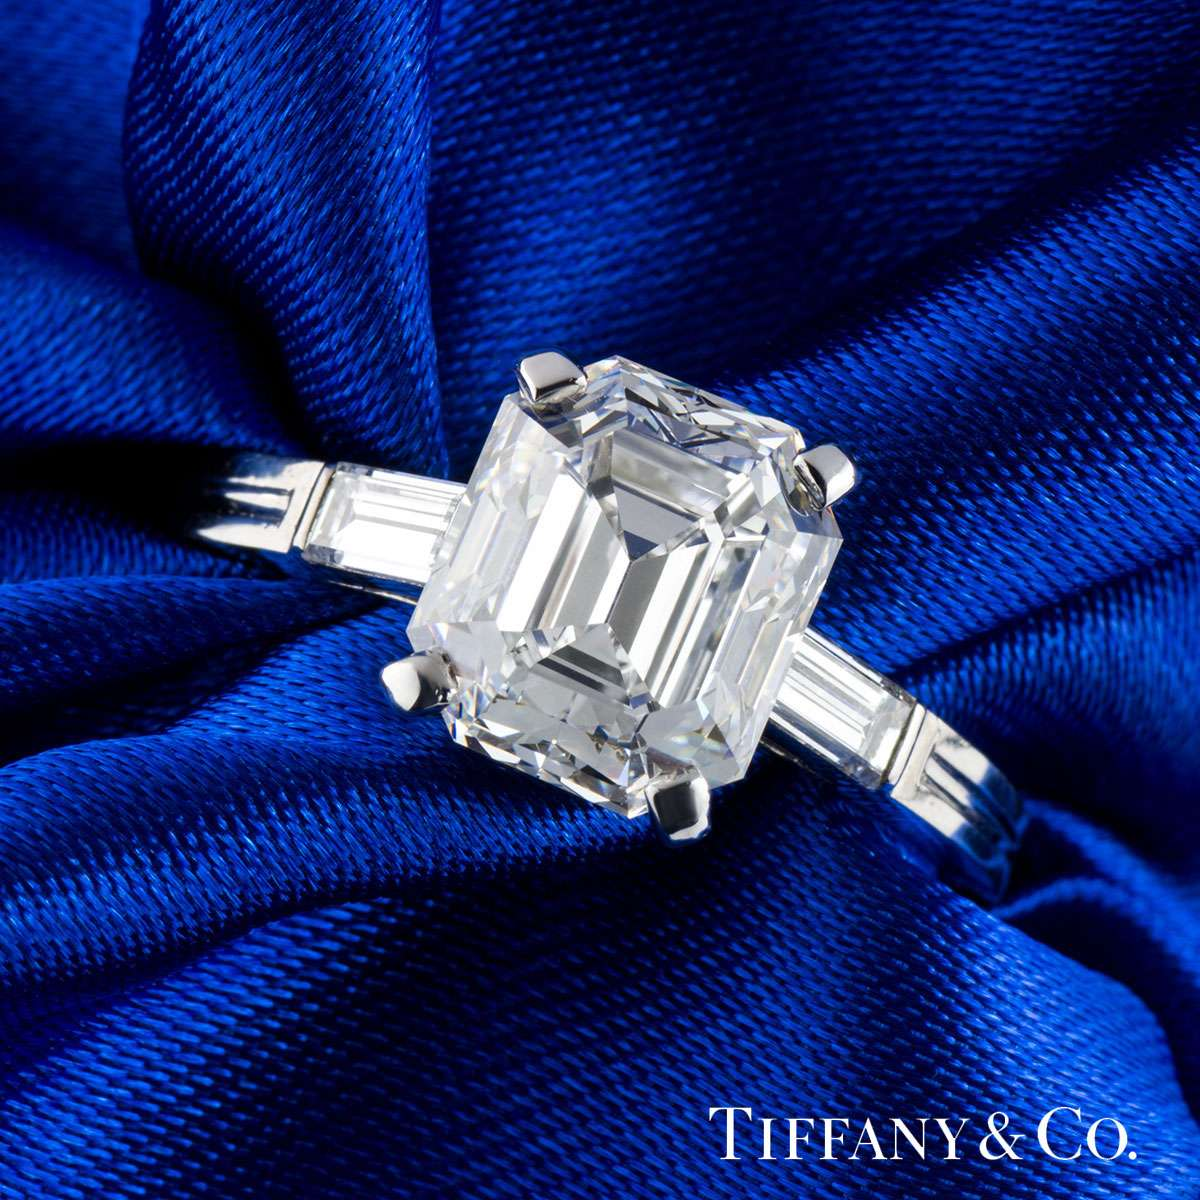 Tiffany & Co Palladium Emerald Cut Diamond Ring 3.48ct E/VVS2